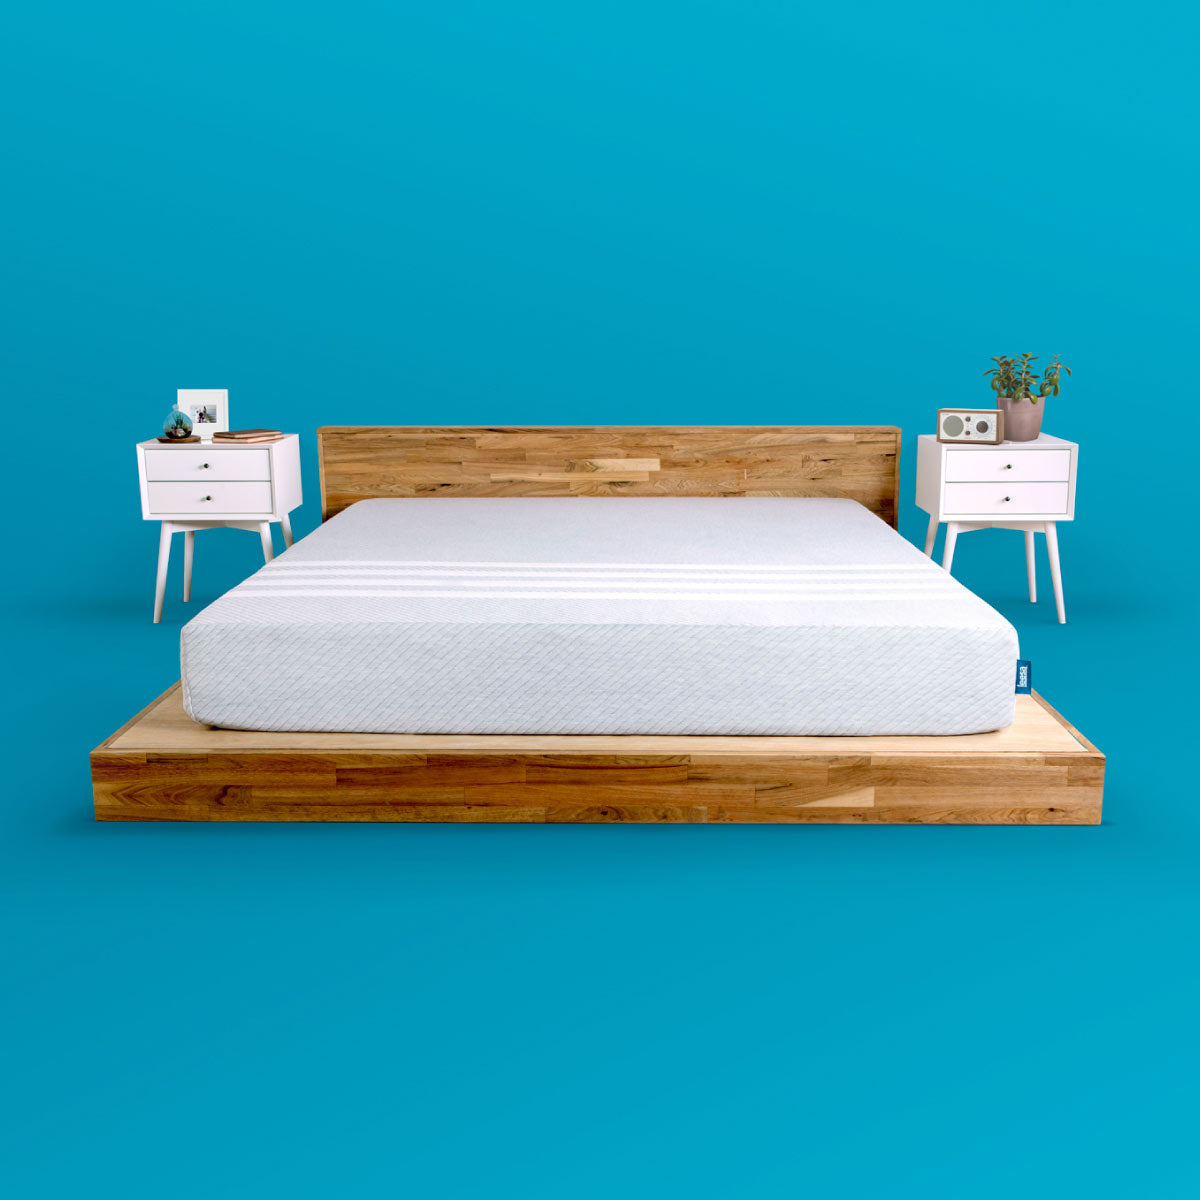 Shop The Leesa Mattress Over 12 500 5 Star Reviews